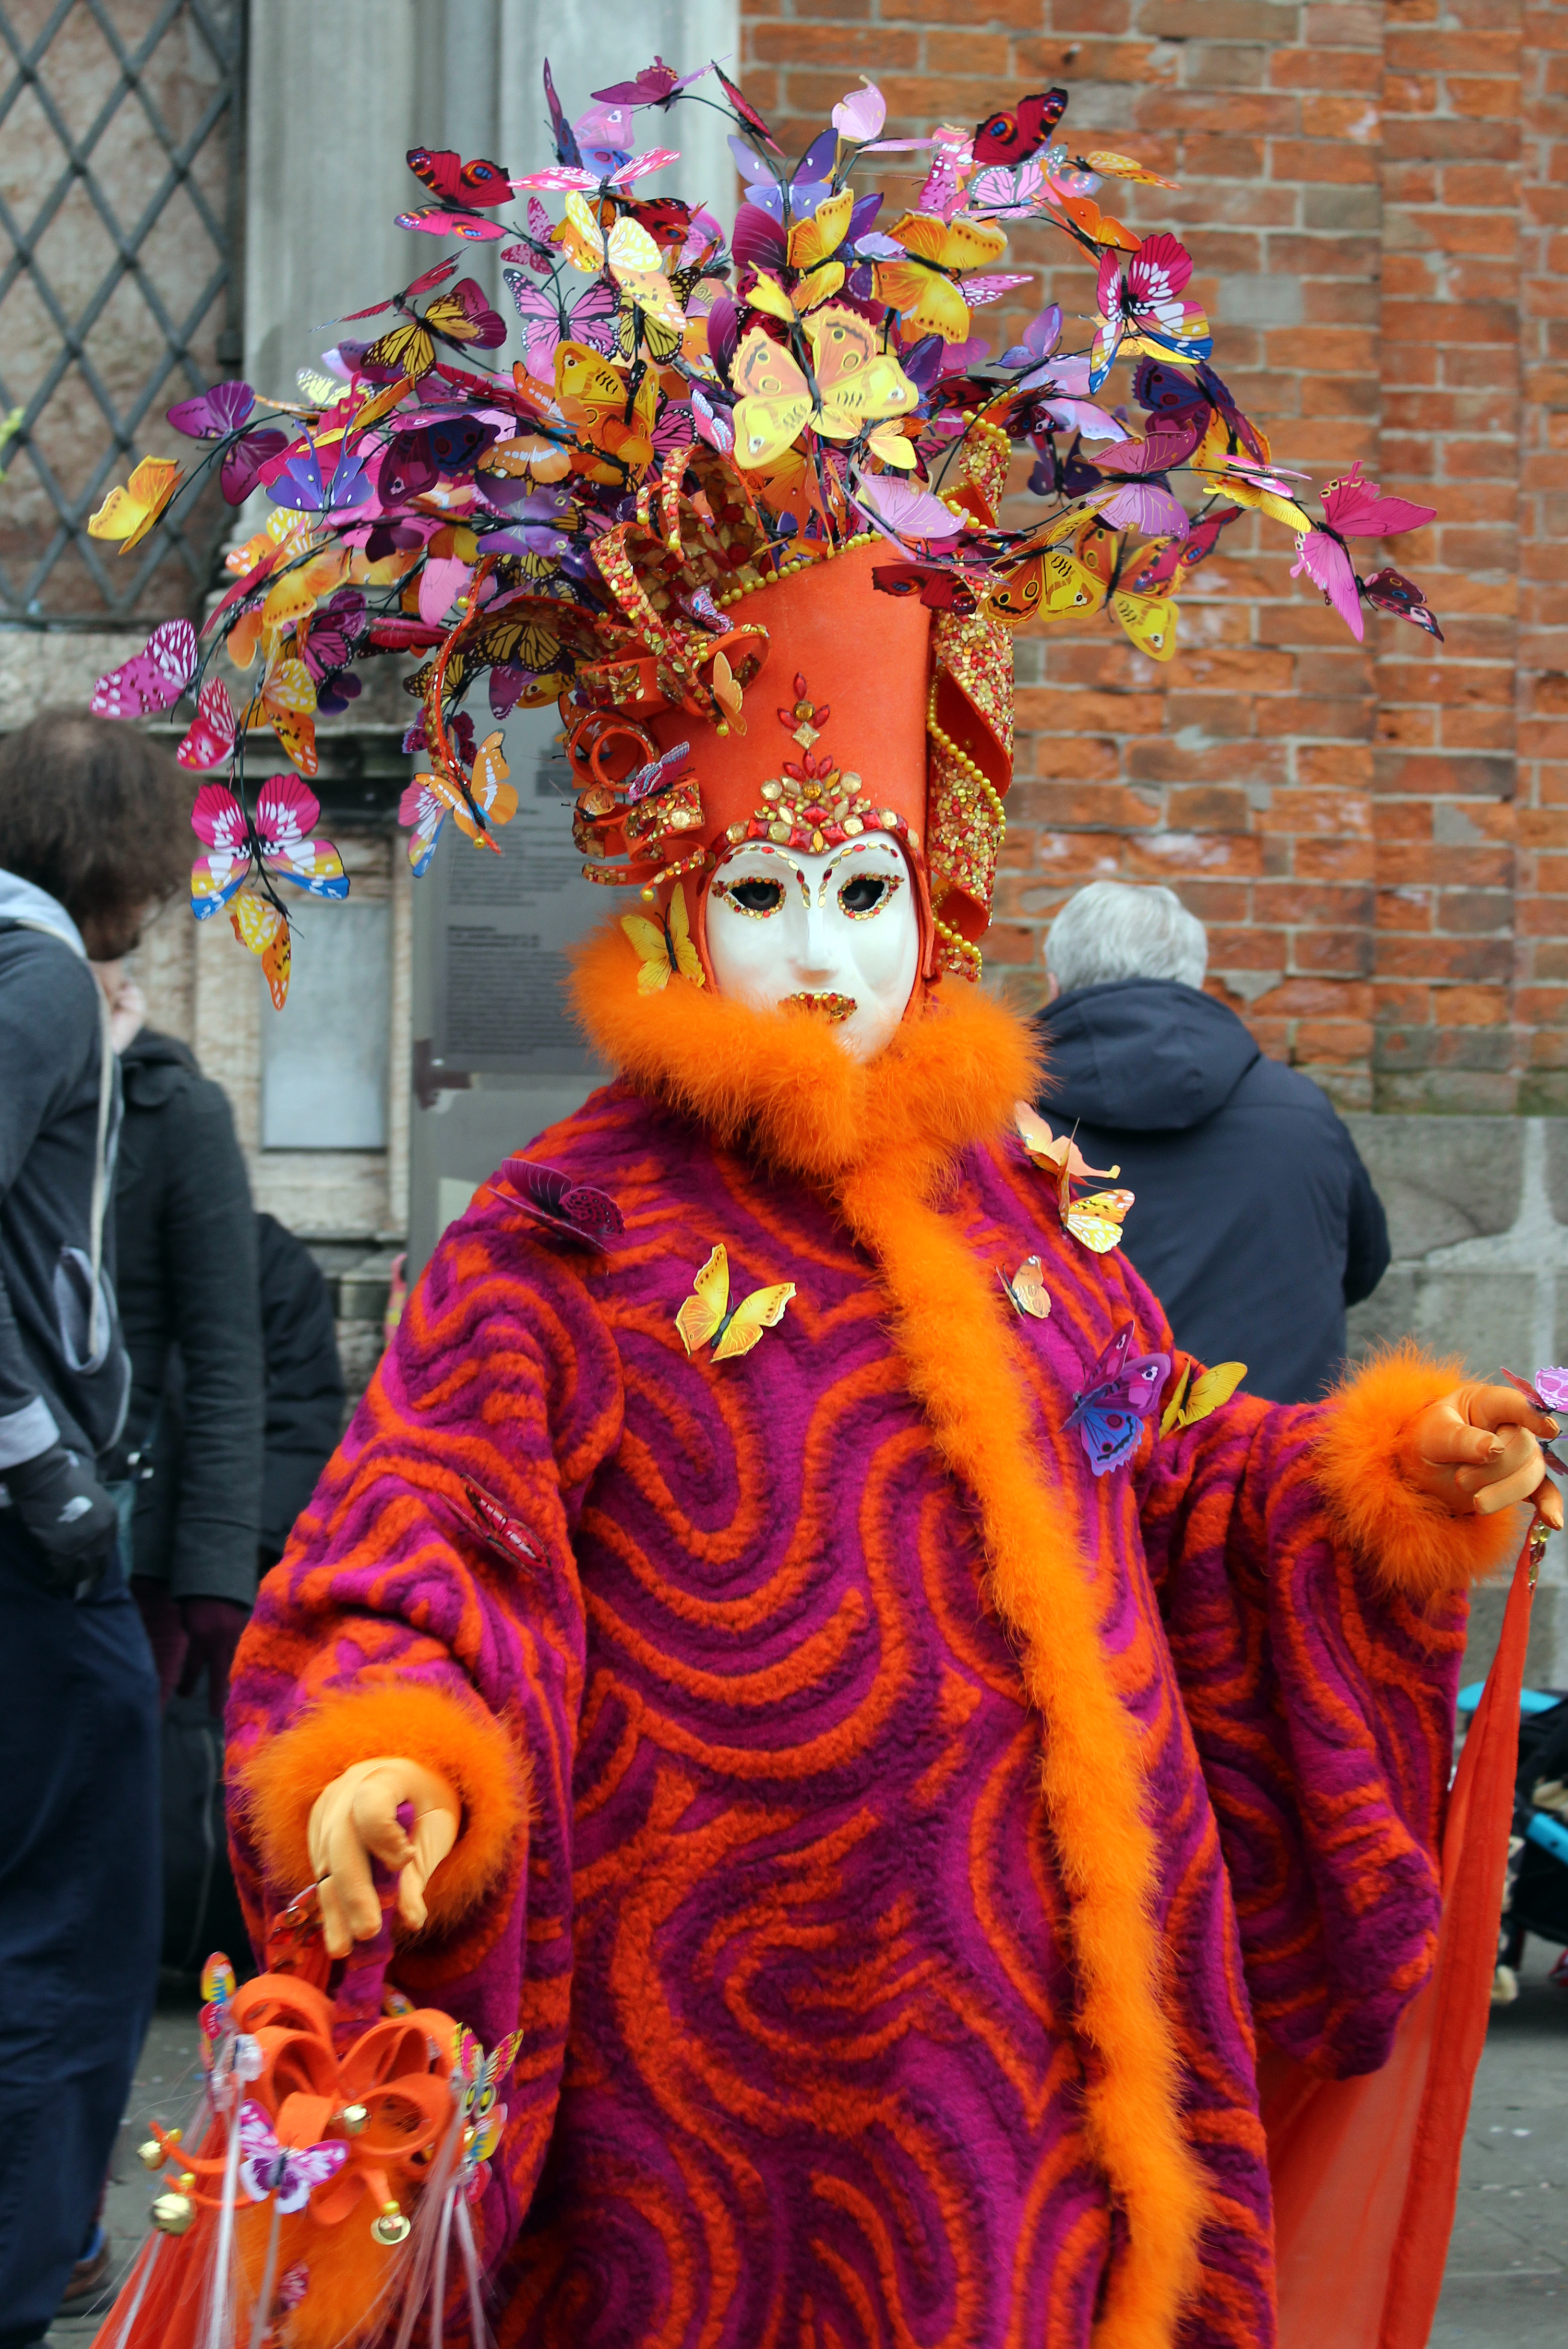 Masquerade with Butterflies on Hat in Venice Italy during Carnevale